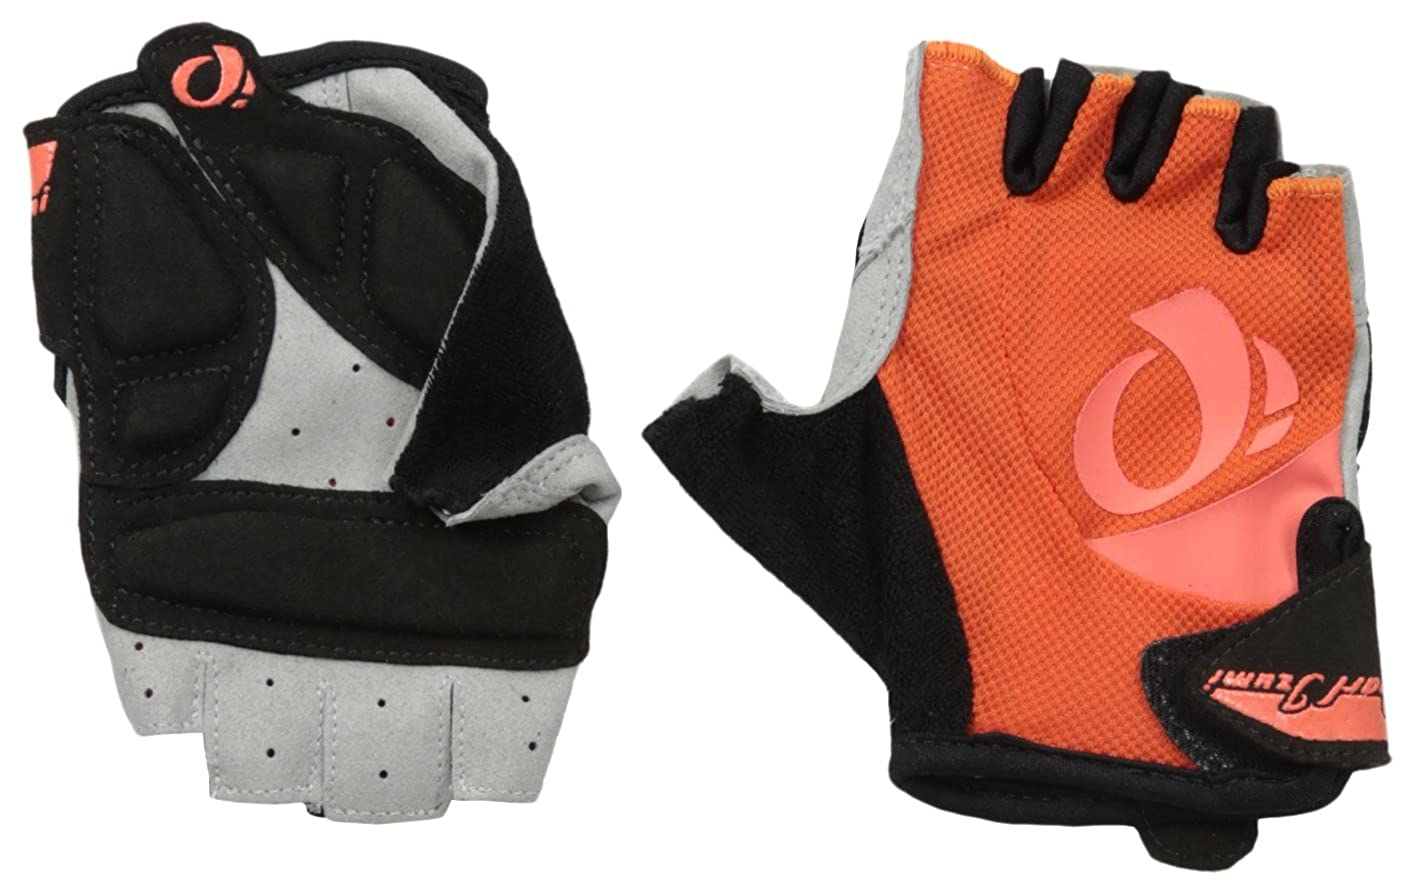 Pearl Izumi Select Women/'s Cycling Gloves 14241401 Color Black Size Large NEW